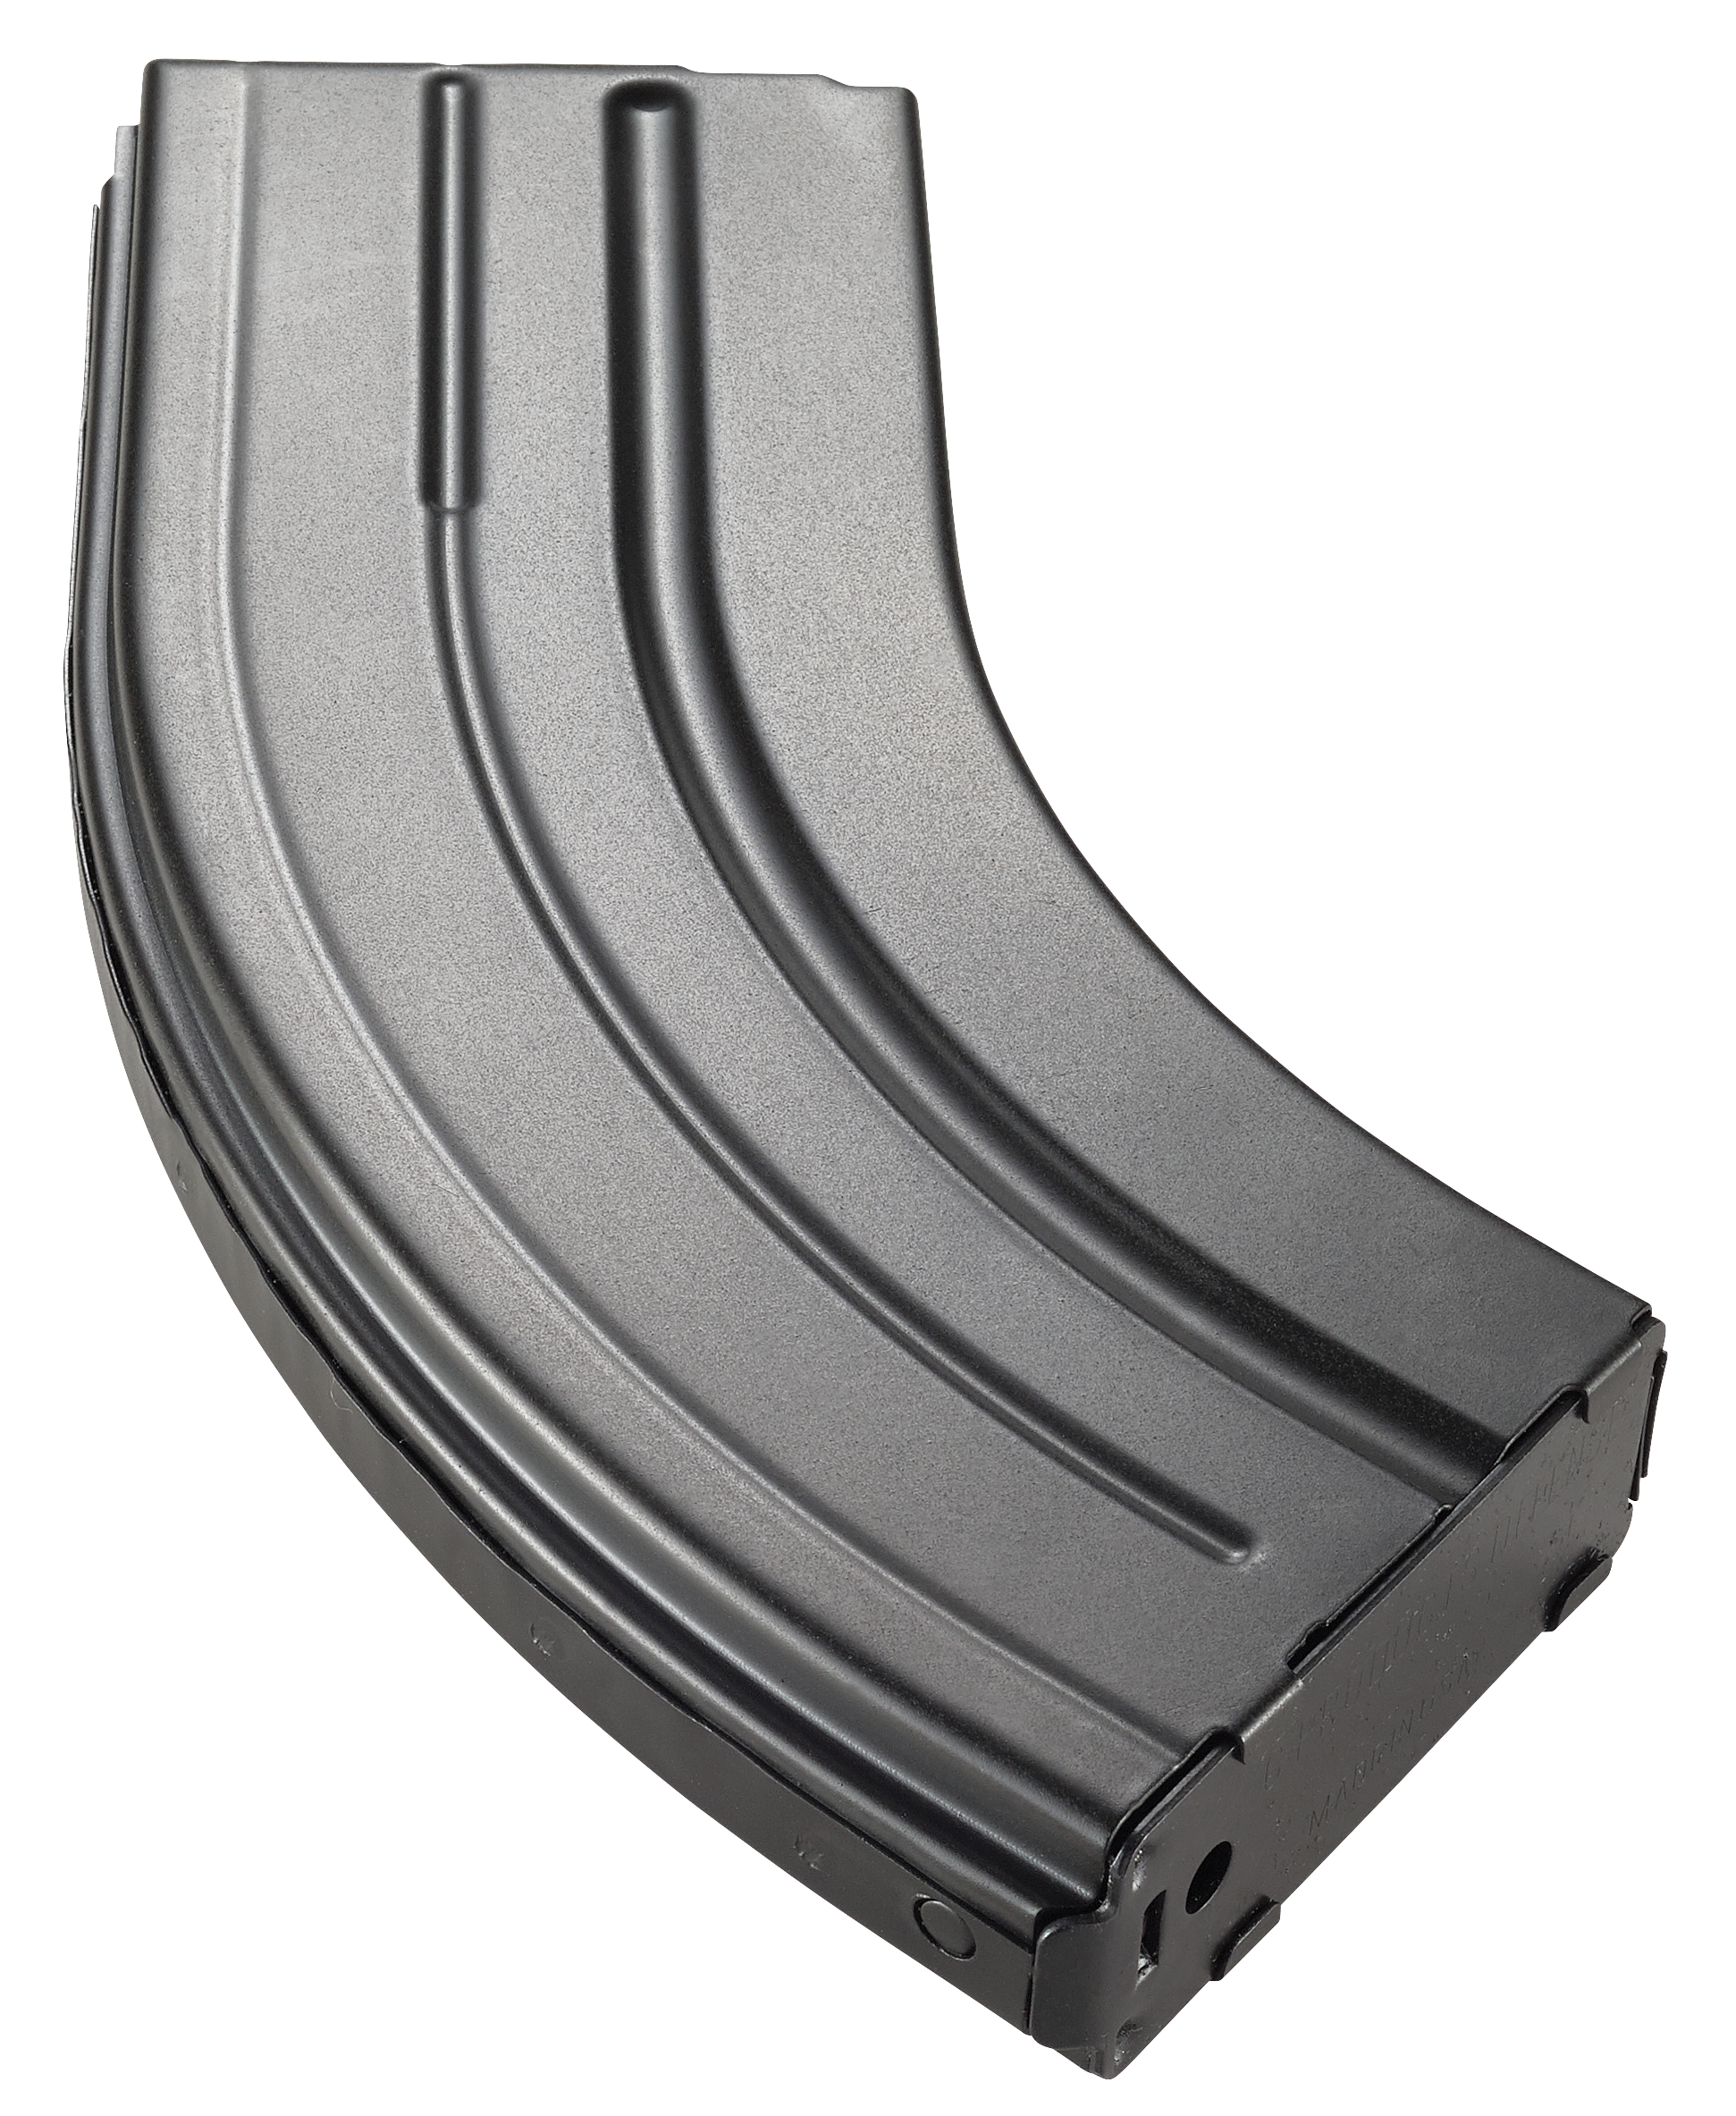 C Products Defense Inc 3062041205CP AR-15 7.62x39mm 30 rd Stainless Steel Black Finish